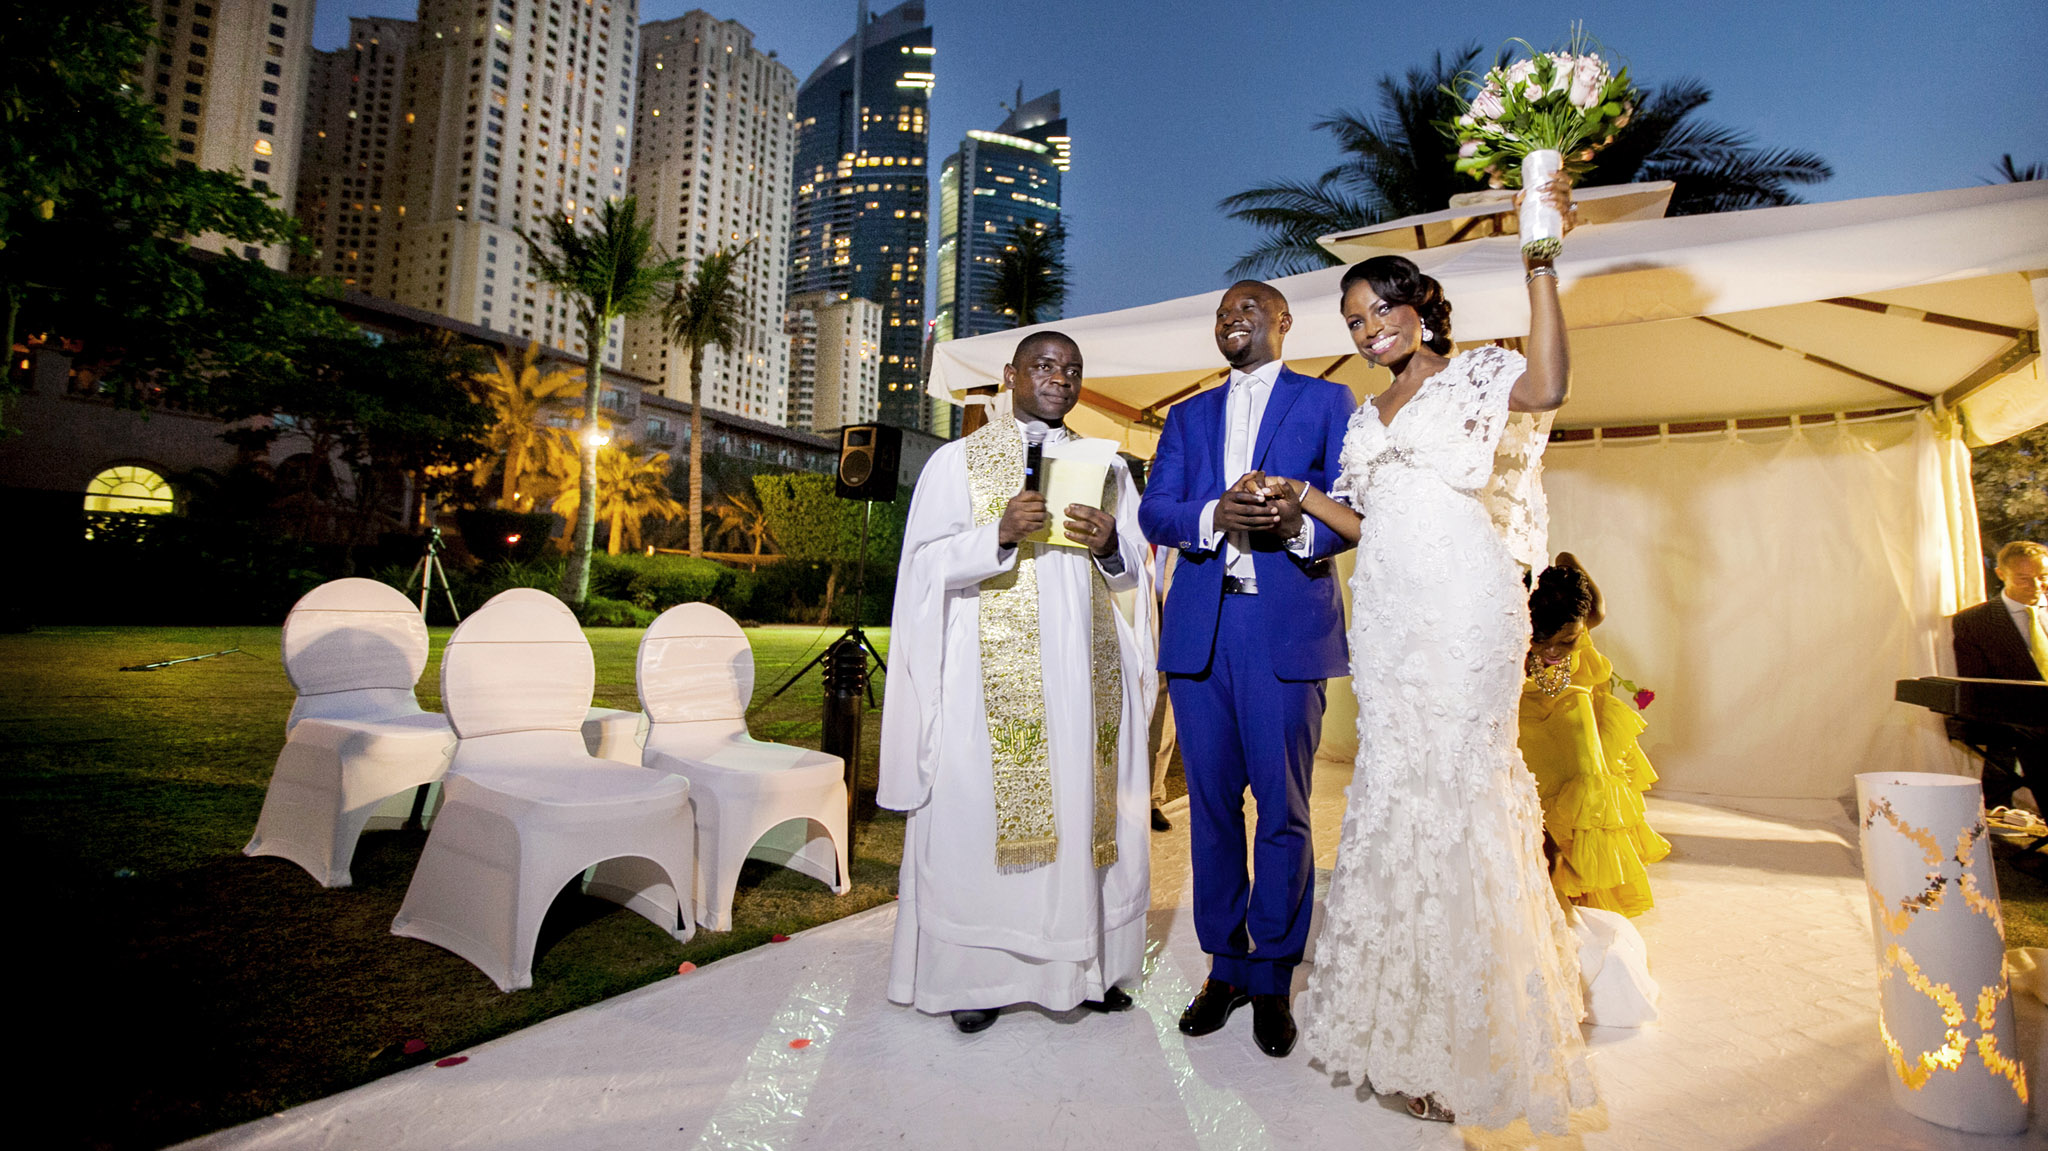 Wedding Carlton Hotel Dubai